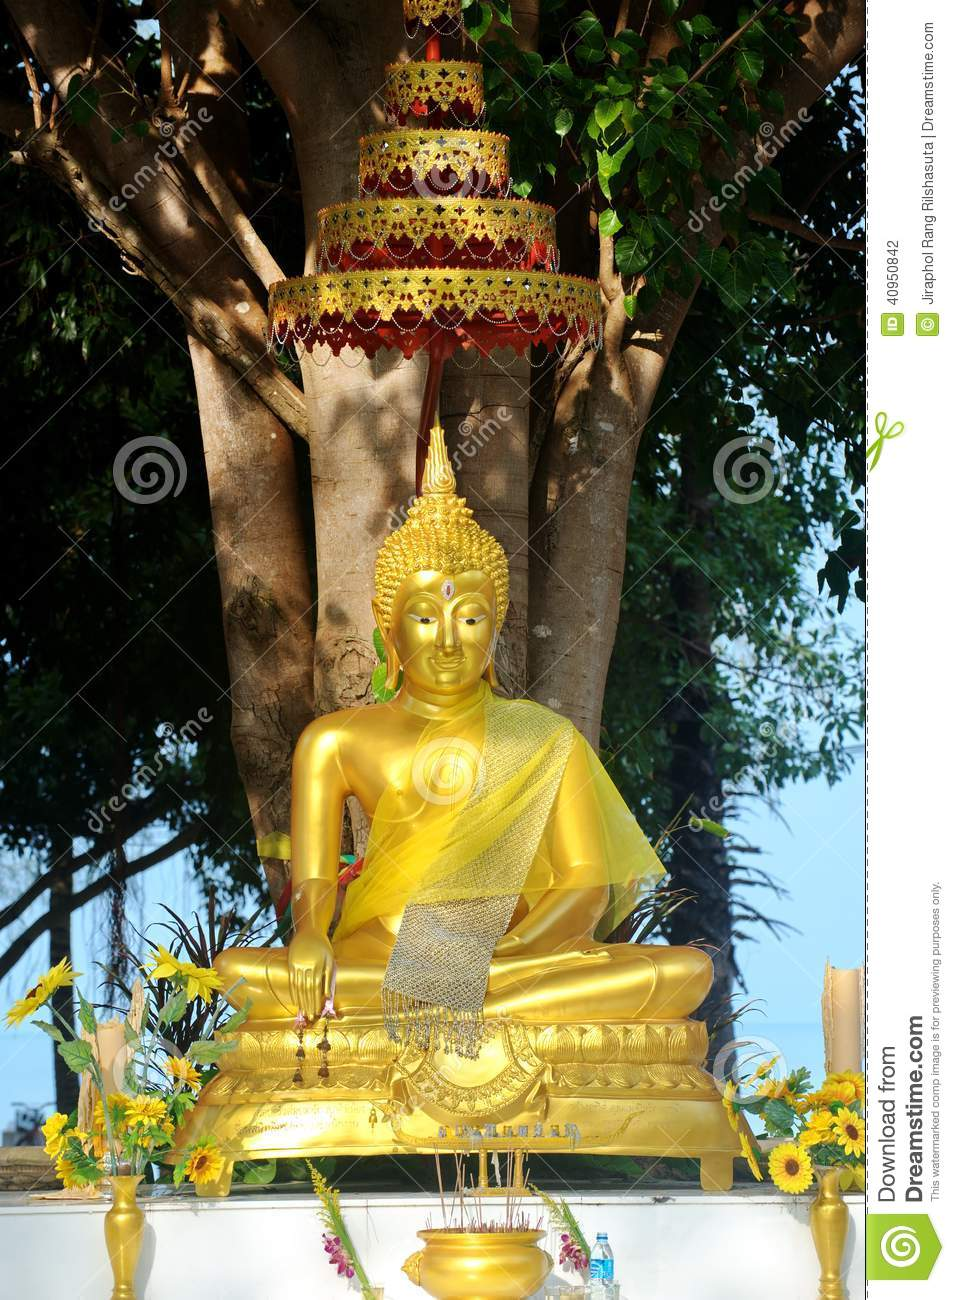 buddha image under bodhi tree royalty free stock image